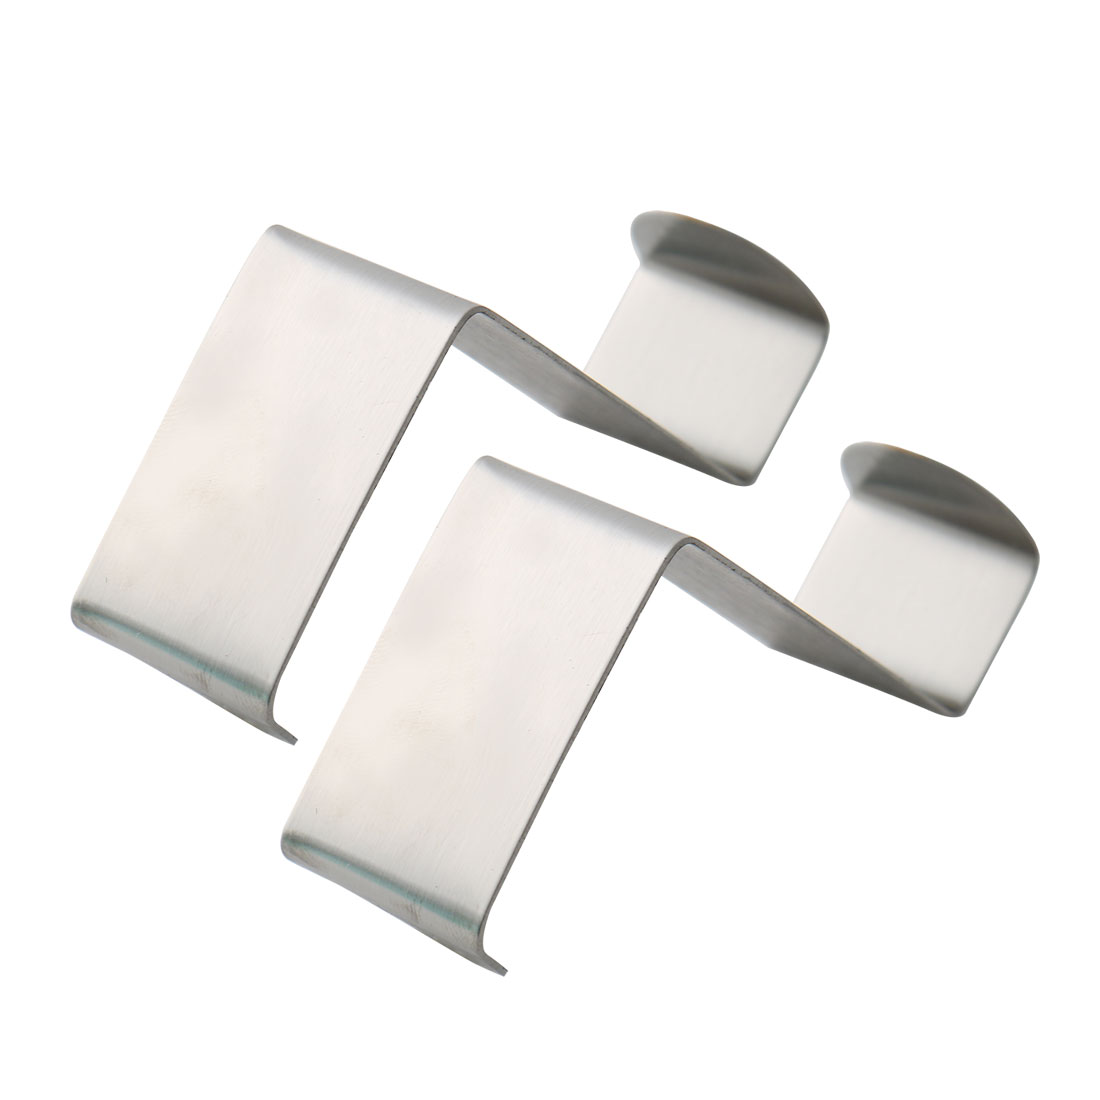 Household Metal Z Shaped Over Door Hooks Clothes Towel Hanger Holder Silver Tone 2 Pcs